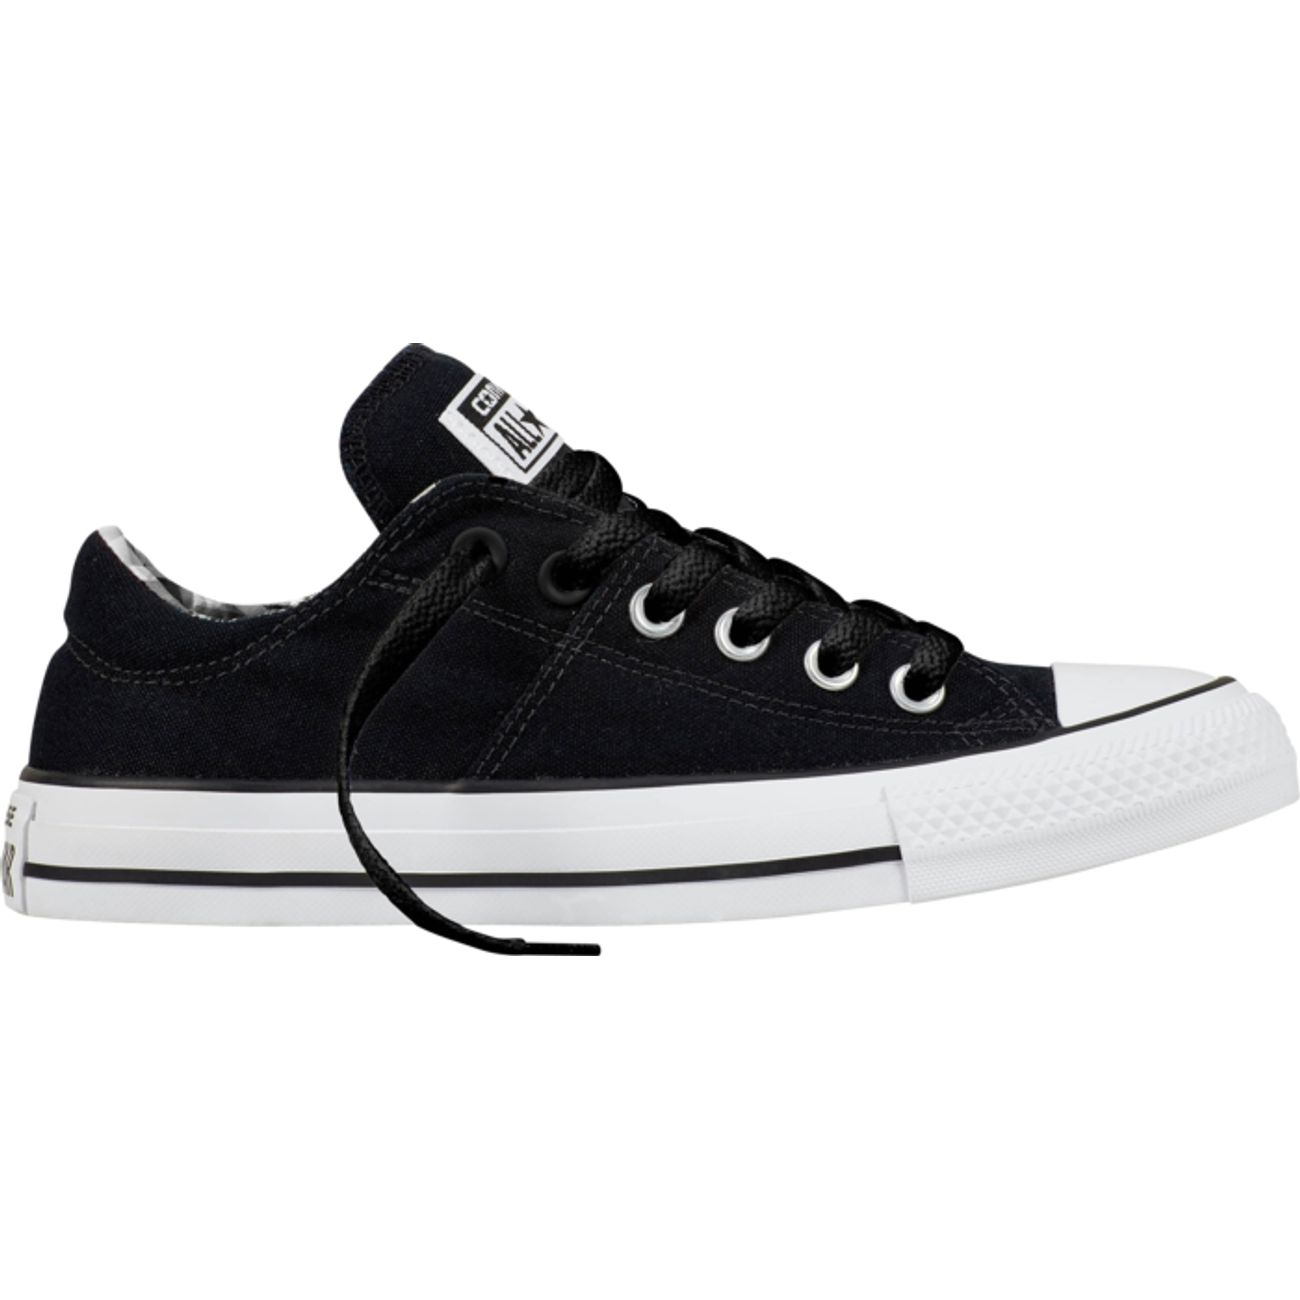 CHAUSSURES BASSES Loisirs femme CONVERSE CHUCK TAYLOR ALL STAR MADISON